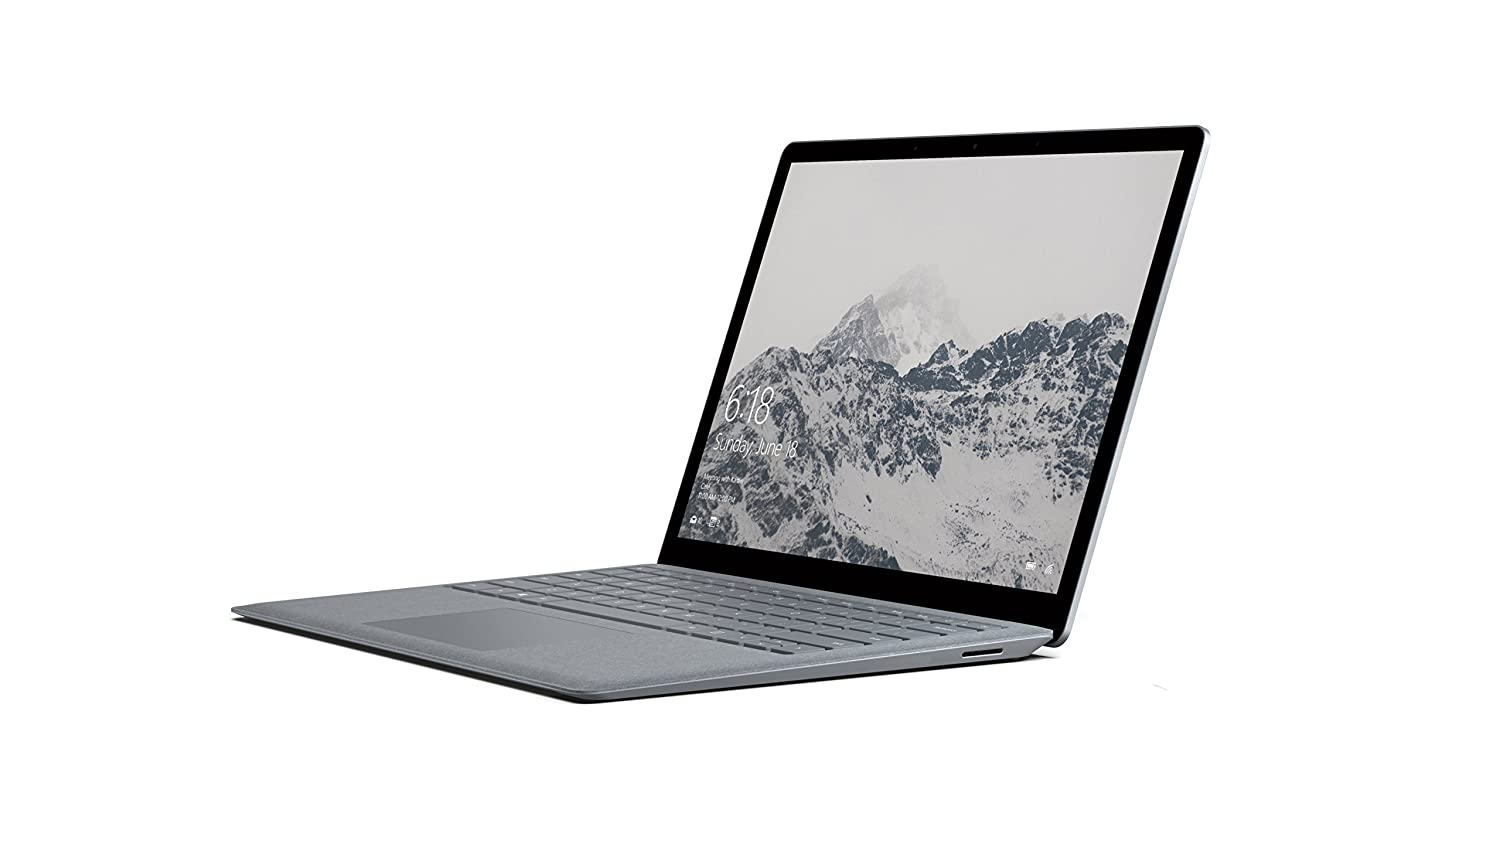 Microsoft Surface Laptop, procesador i5, 128 SSD, 4 GB RAM, Platinum